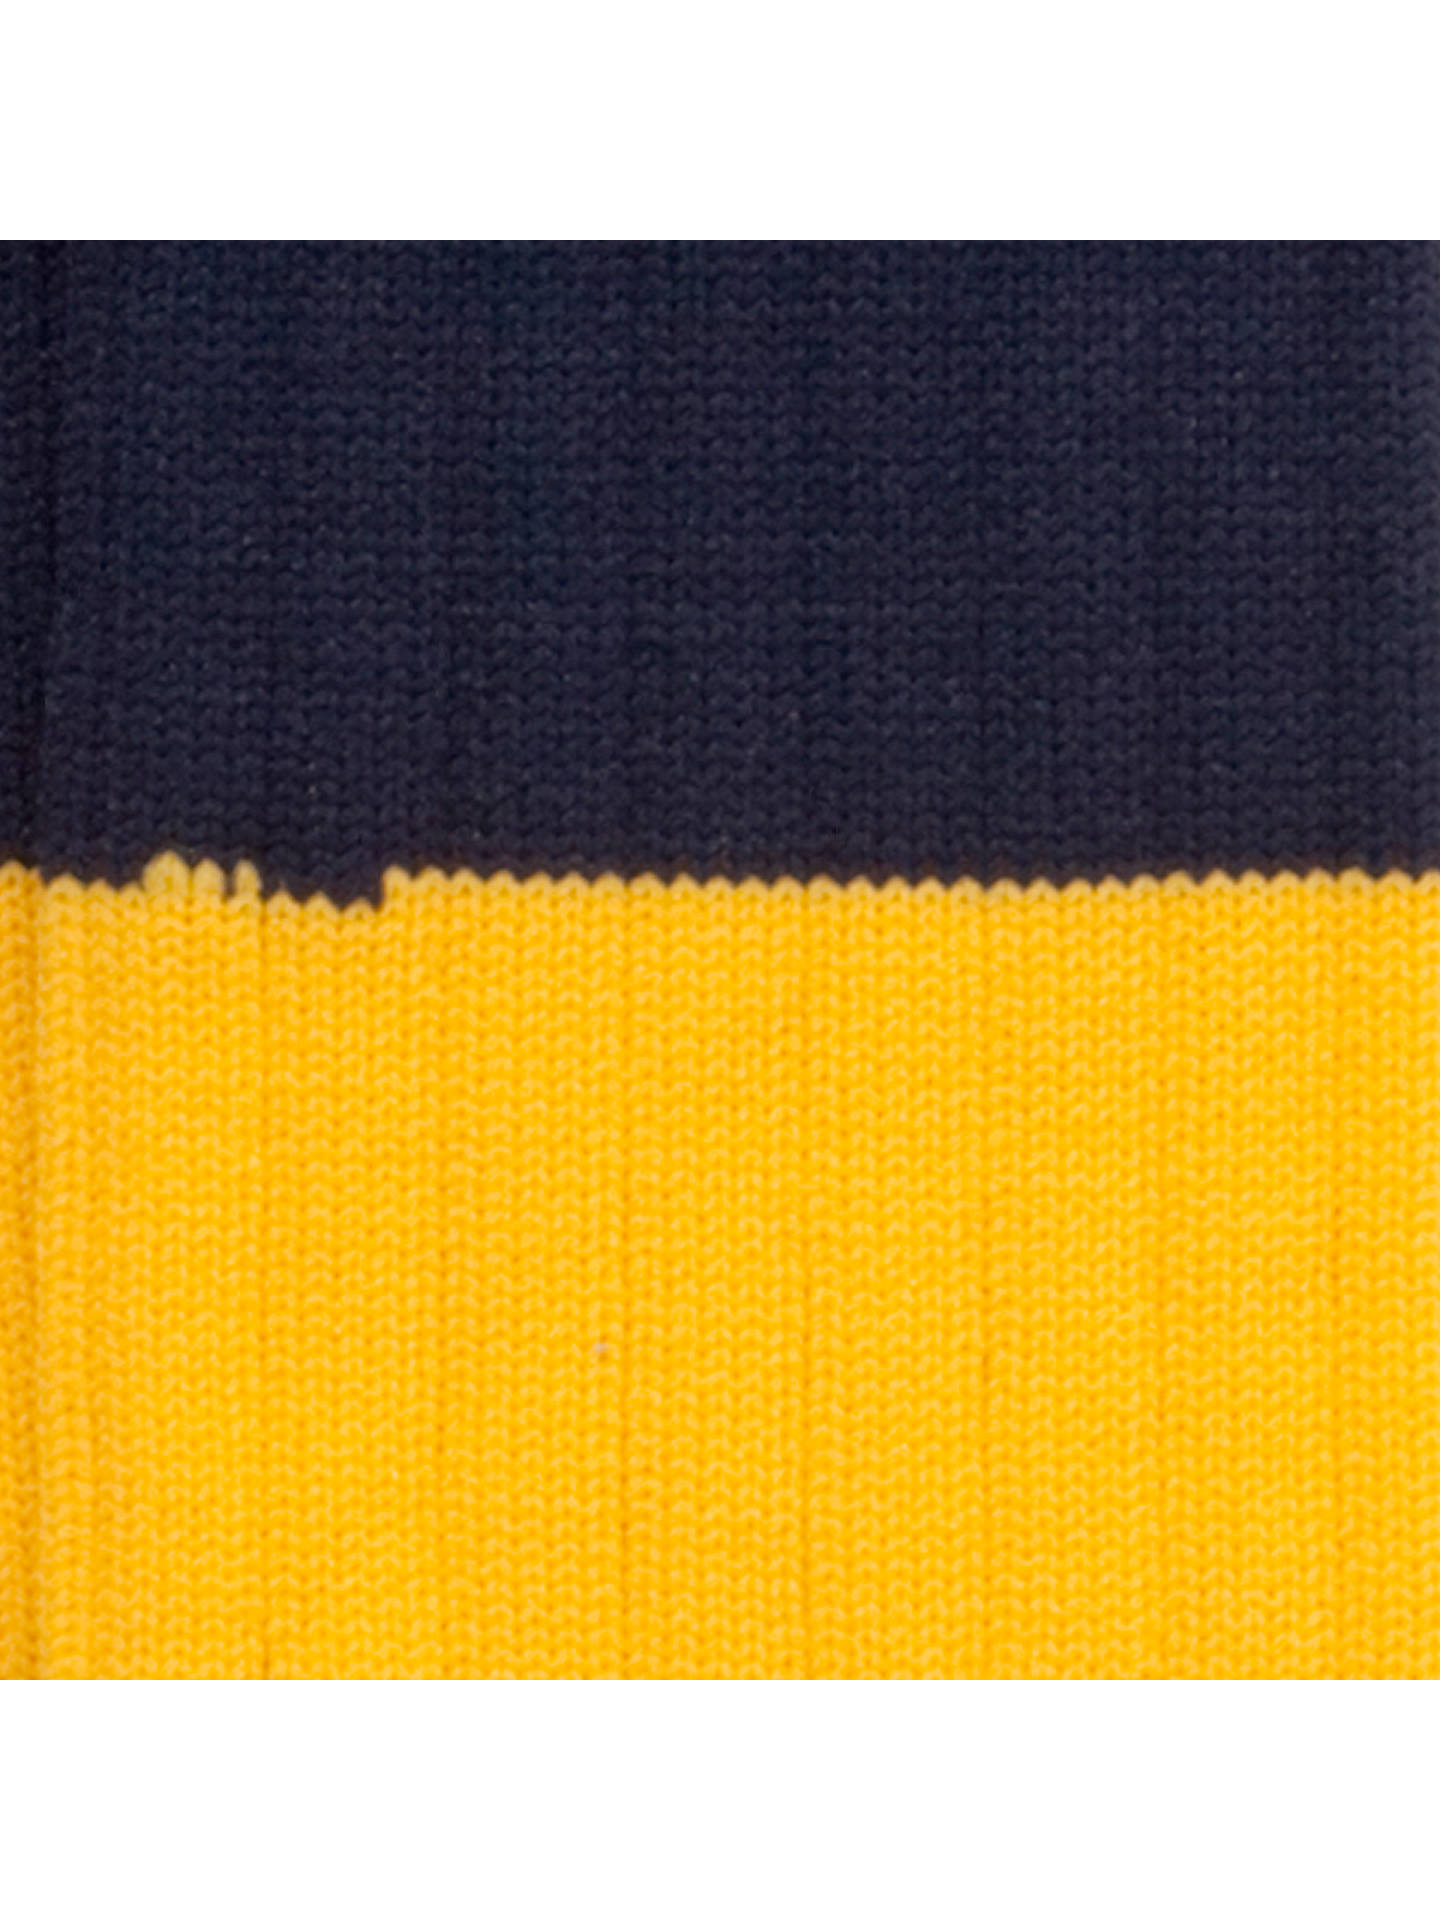 Buy Colfe's School Boys' Rugby Socks, Navy/Yellow, 12 Jnr-2 Online at johnlewis.com